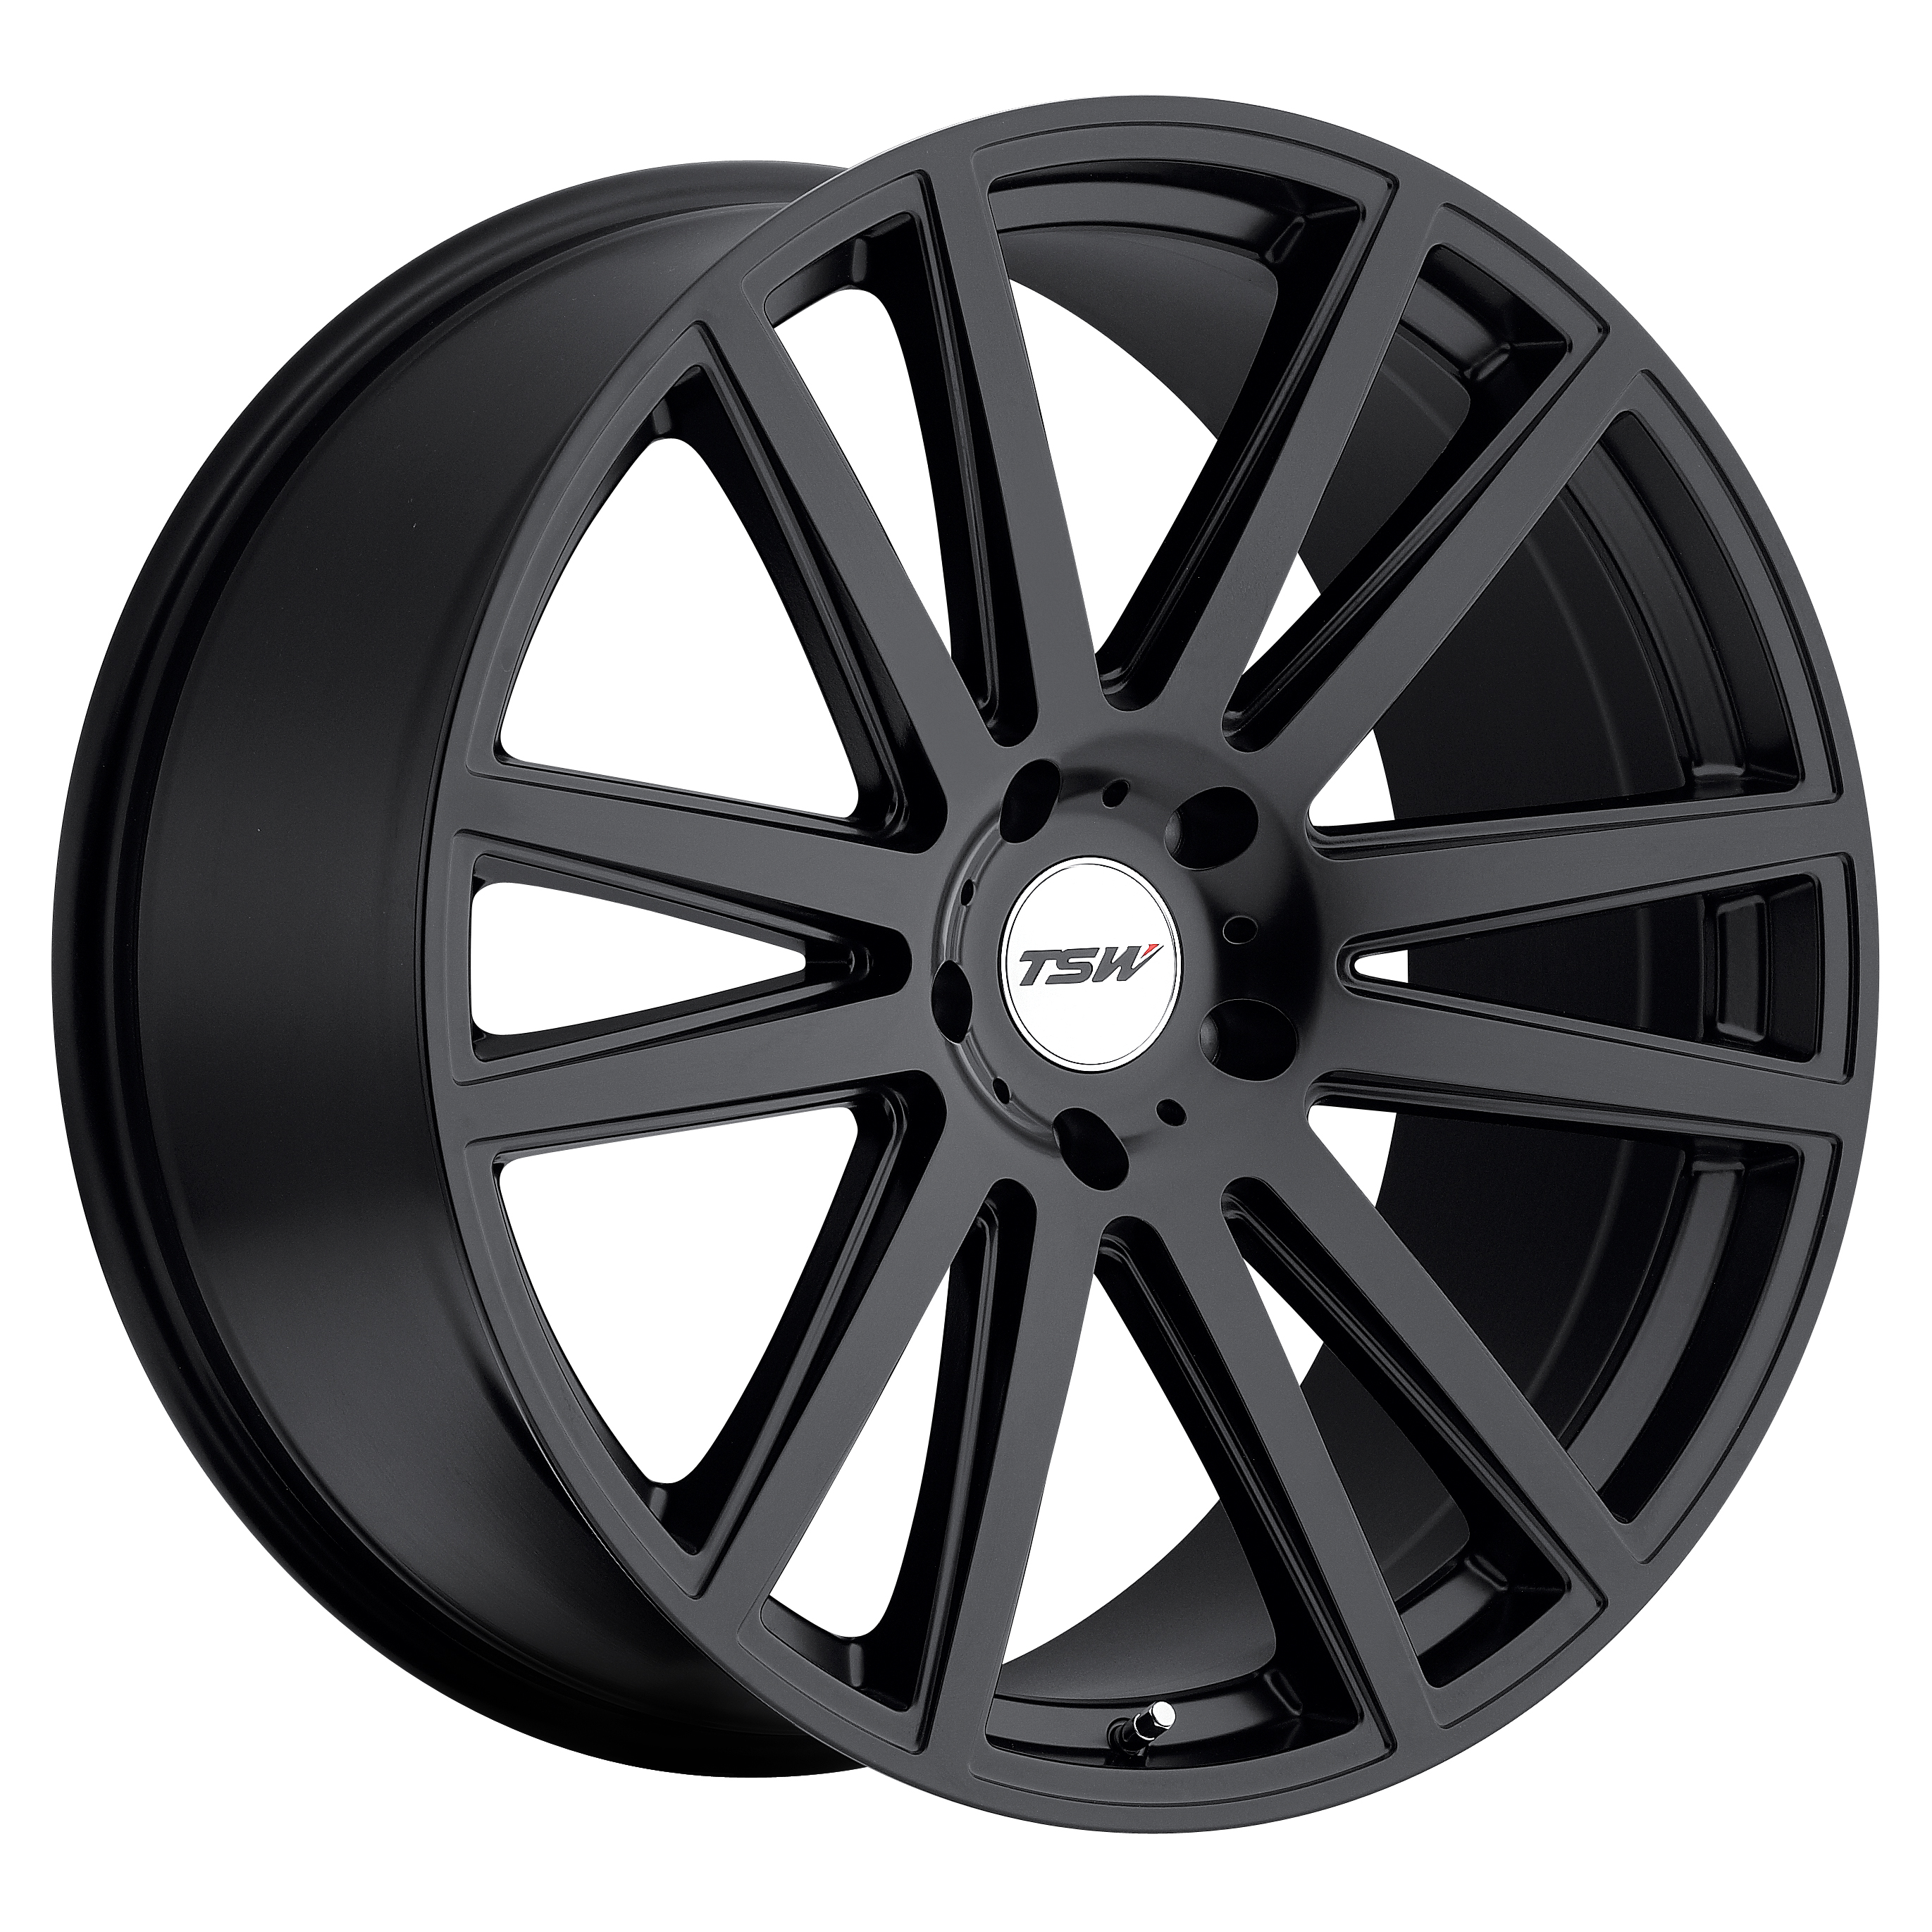 GATSBY  WHEELS AND RIMS PACKAGES